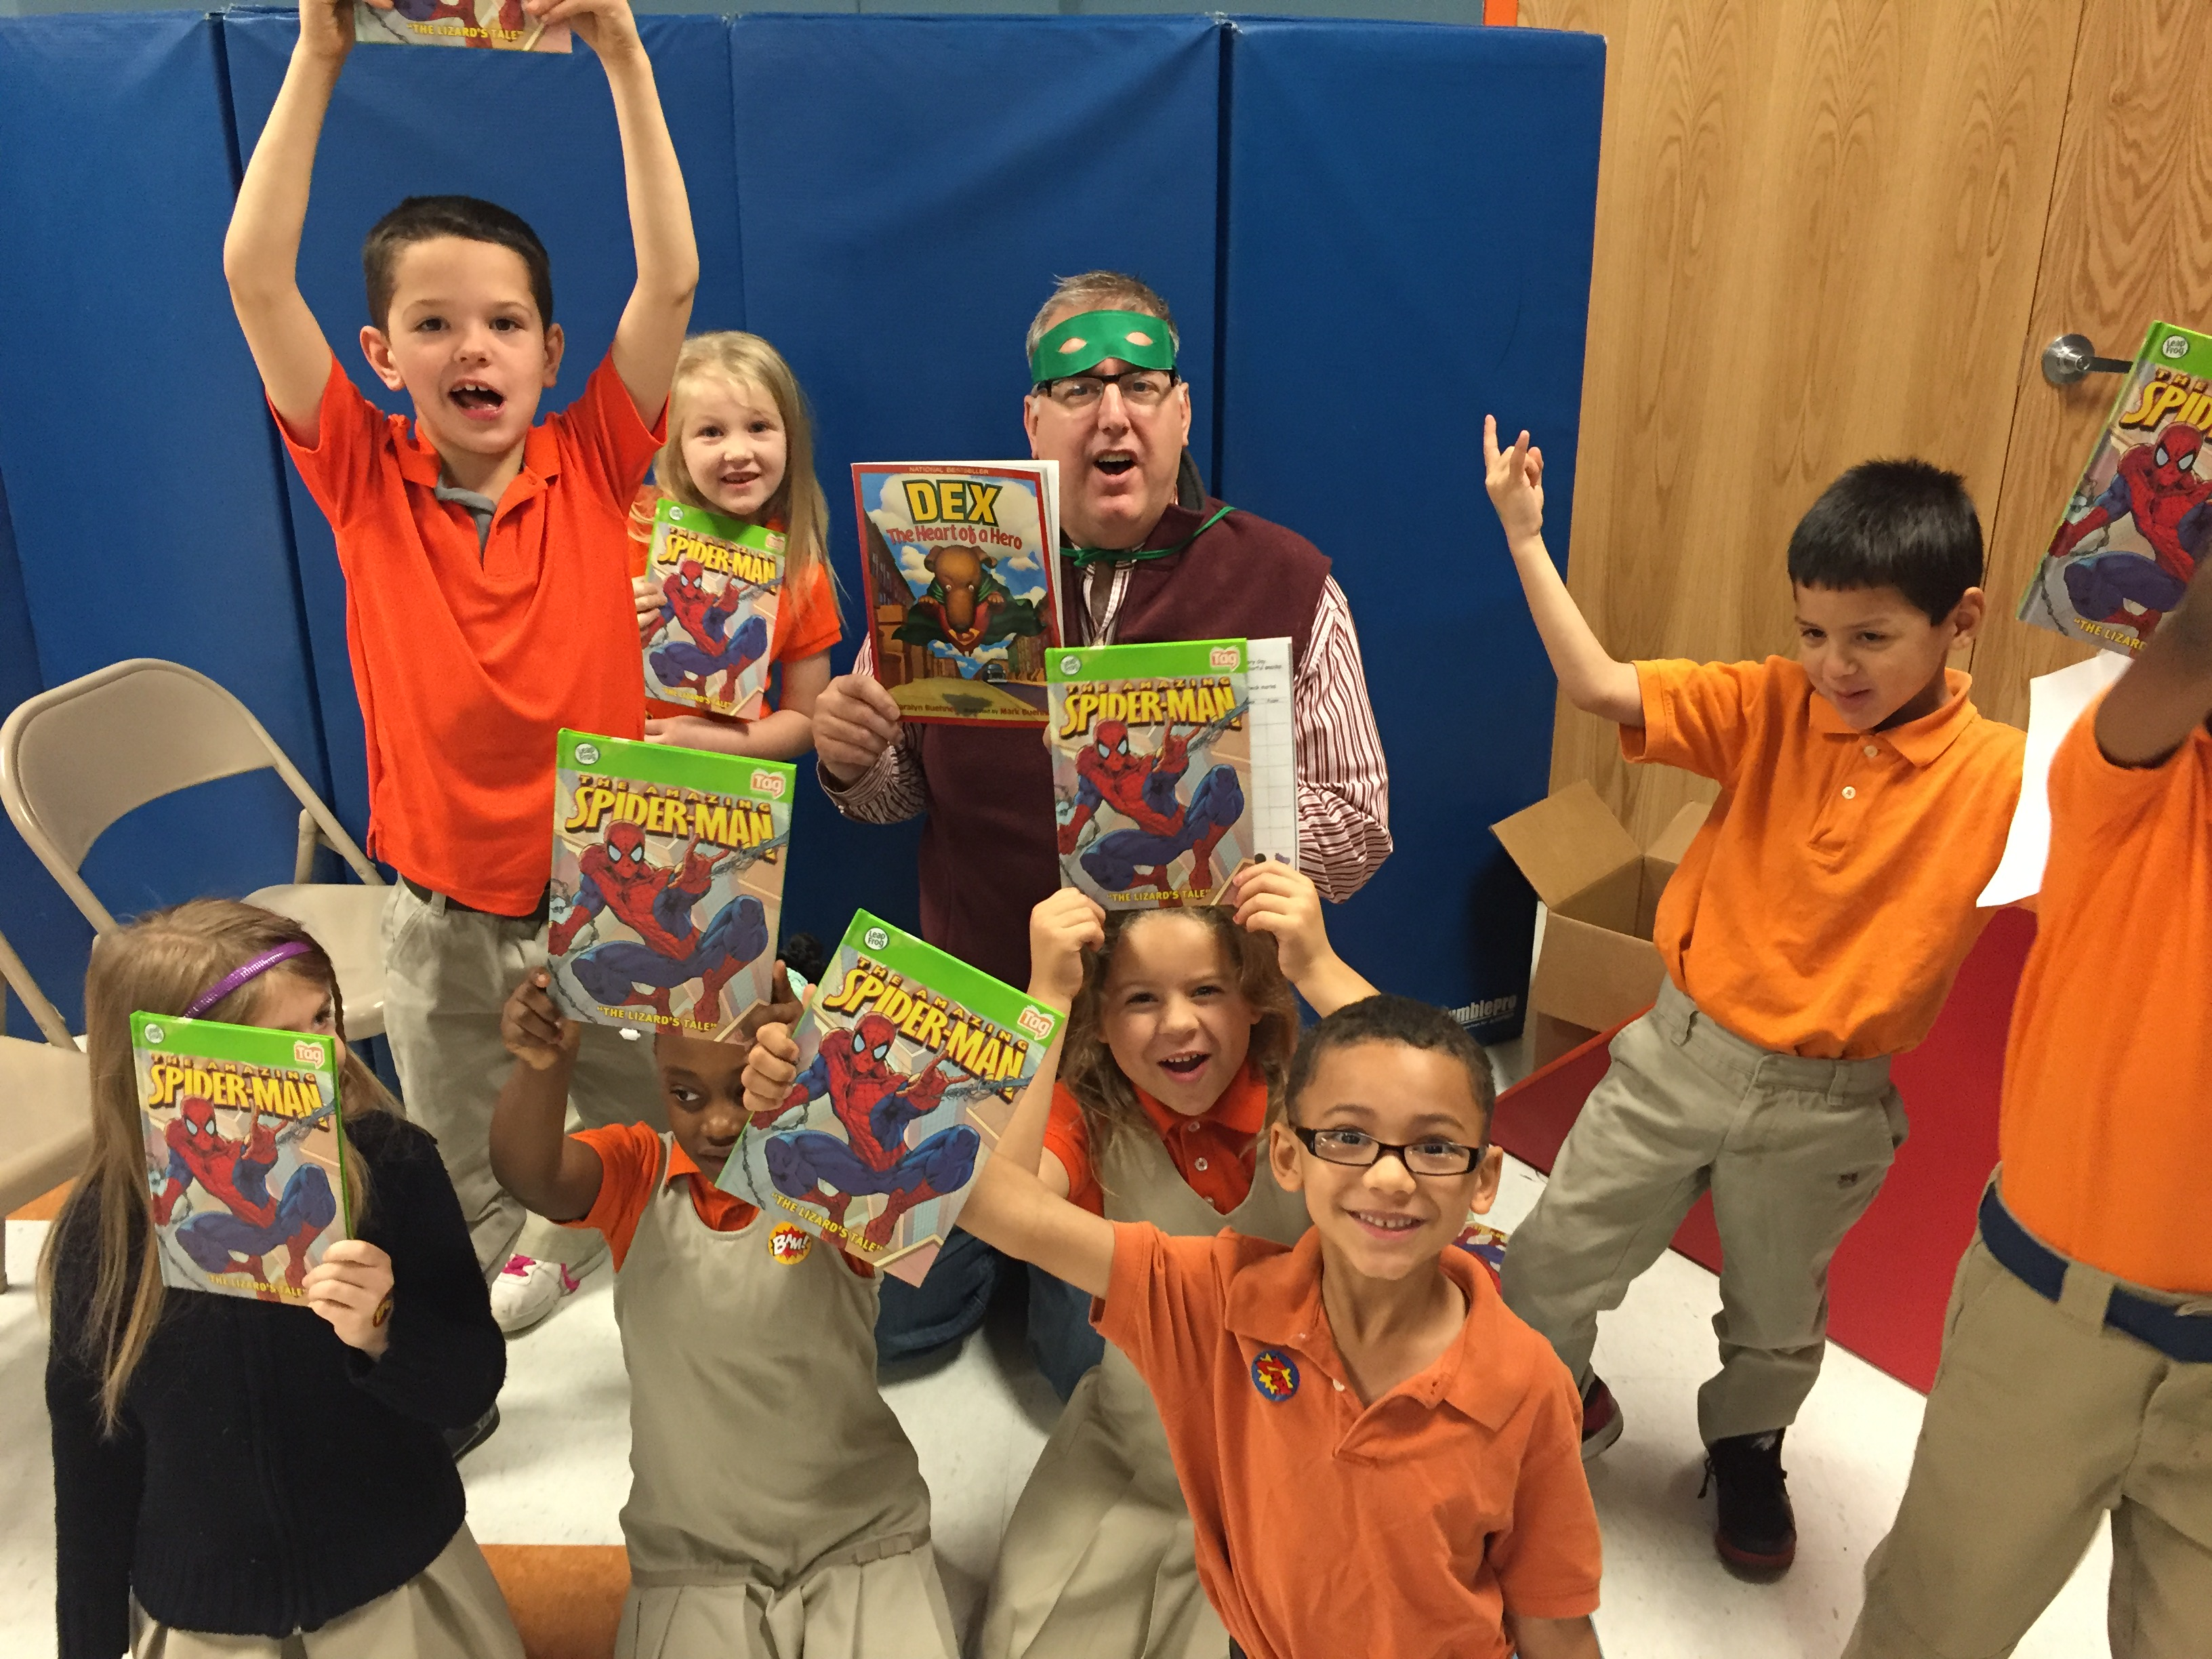 Excited kids showing their Spiderman commic books